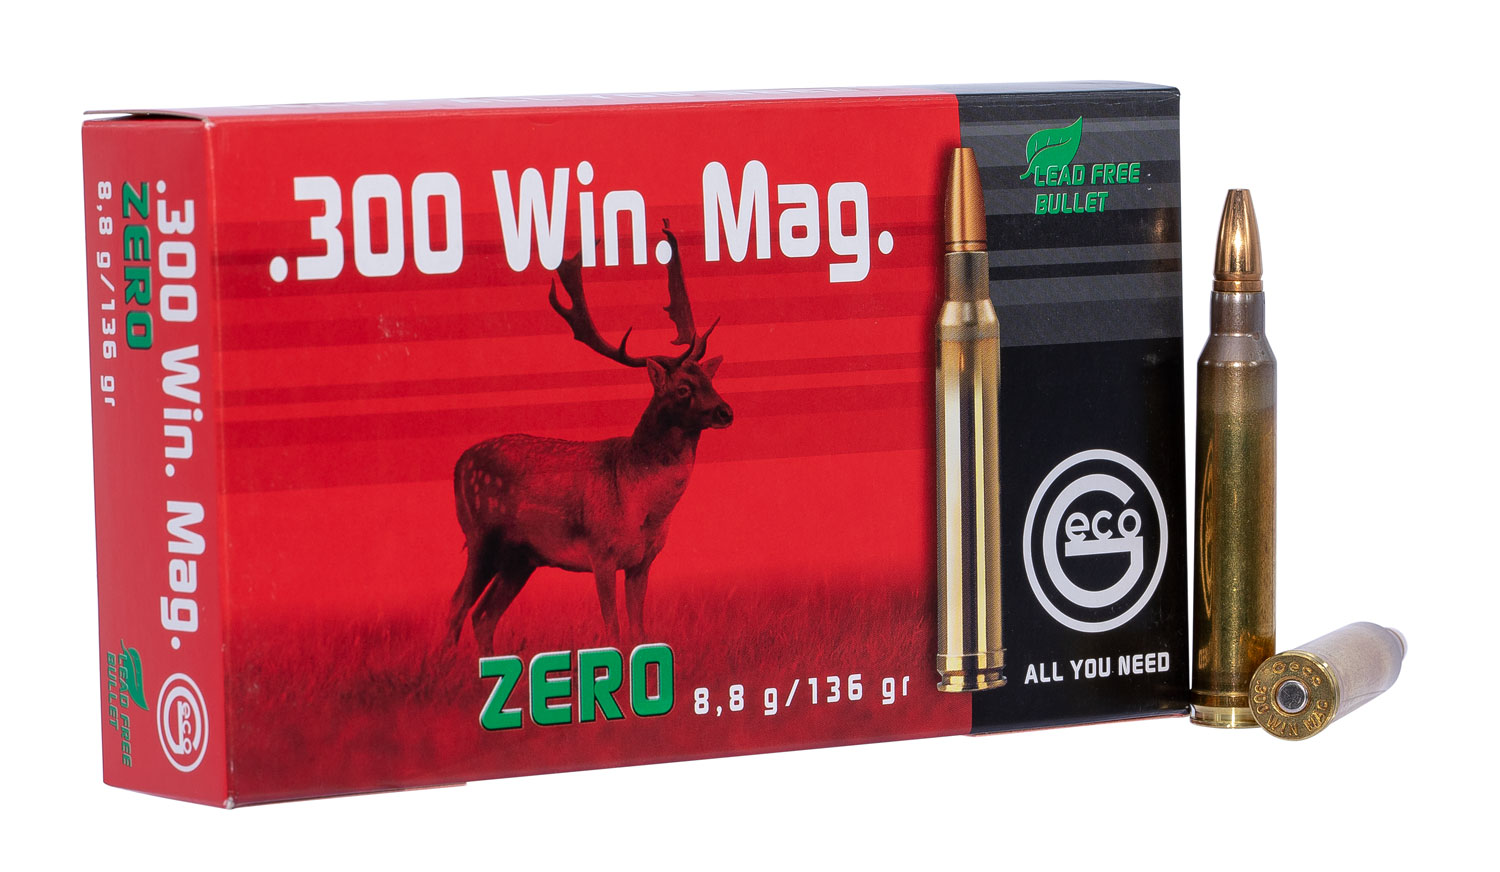 288240020 JHP Geco Zero  300 Winchester Magnum 1336 GR Jacketed Hollow Point 20 Bx/10 Cs